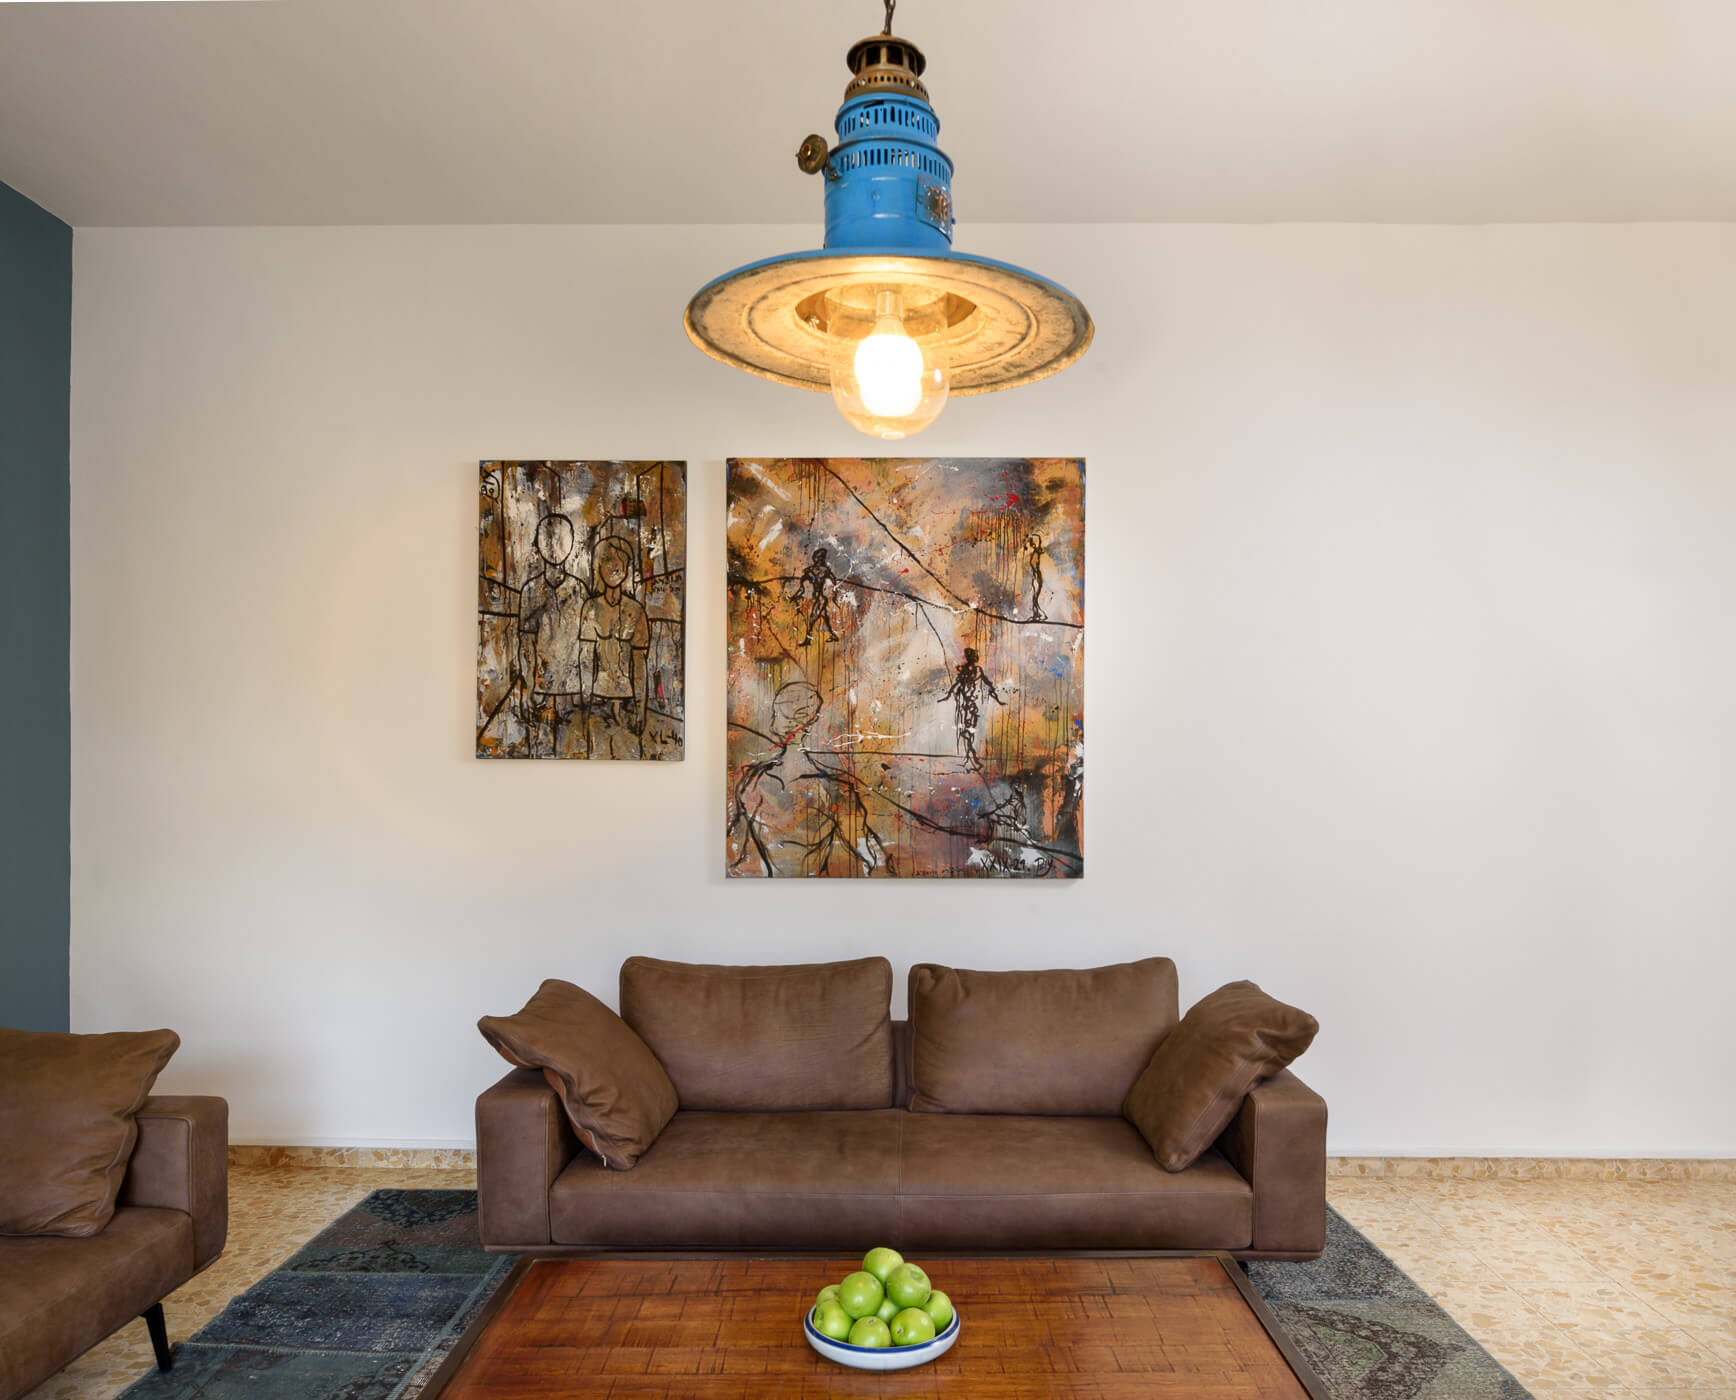 Photo by Itai Aviran | WabiSabi InteriorDesign